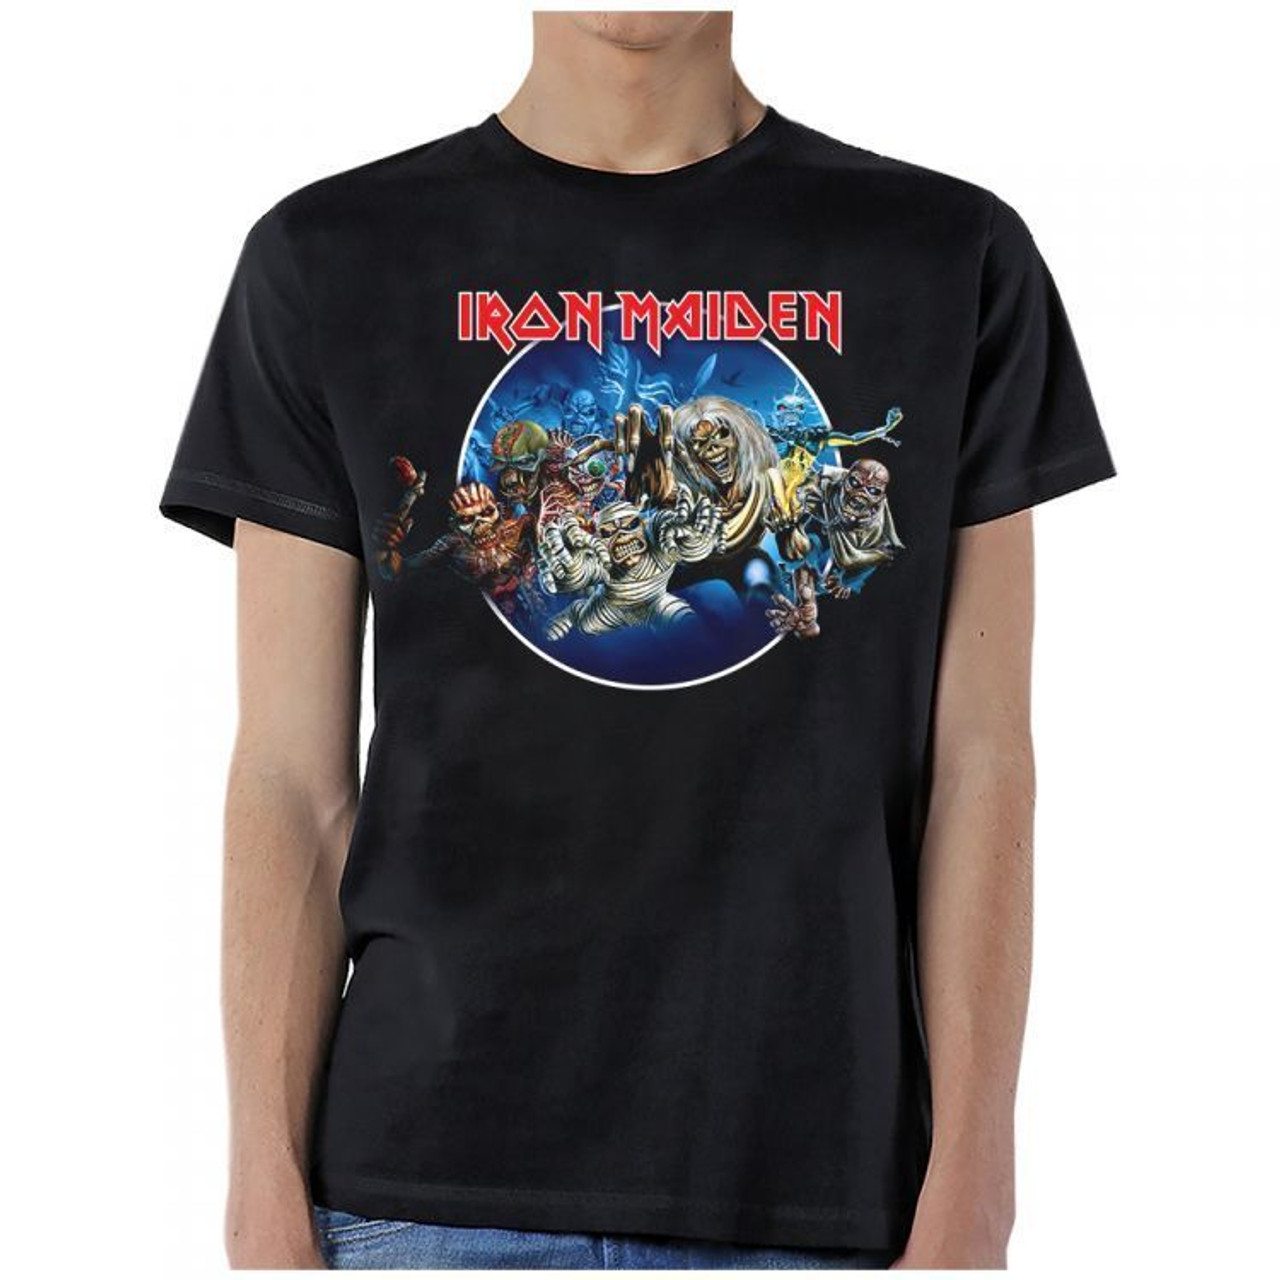 294eec8a Iron Maiden Wasted Years Circle Music Collage Rock Metal Mens T Shirt  IRM10650